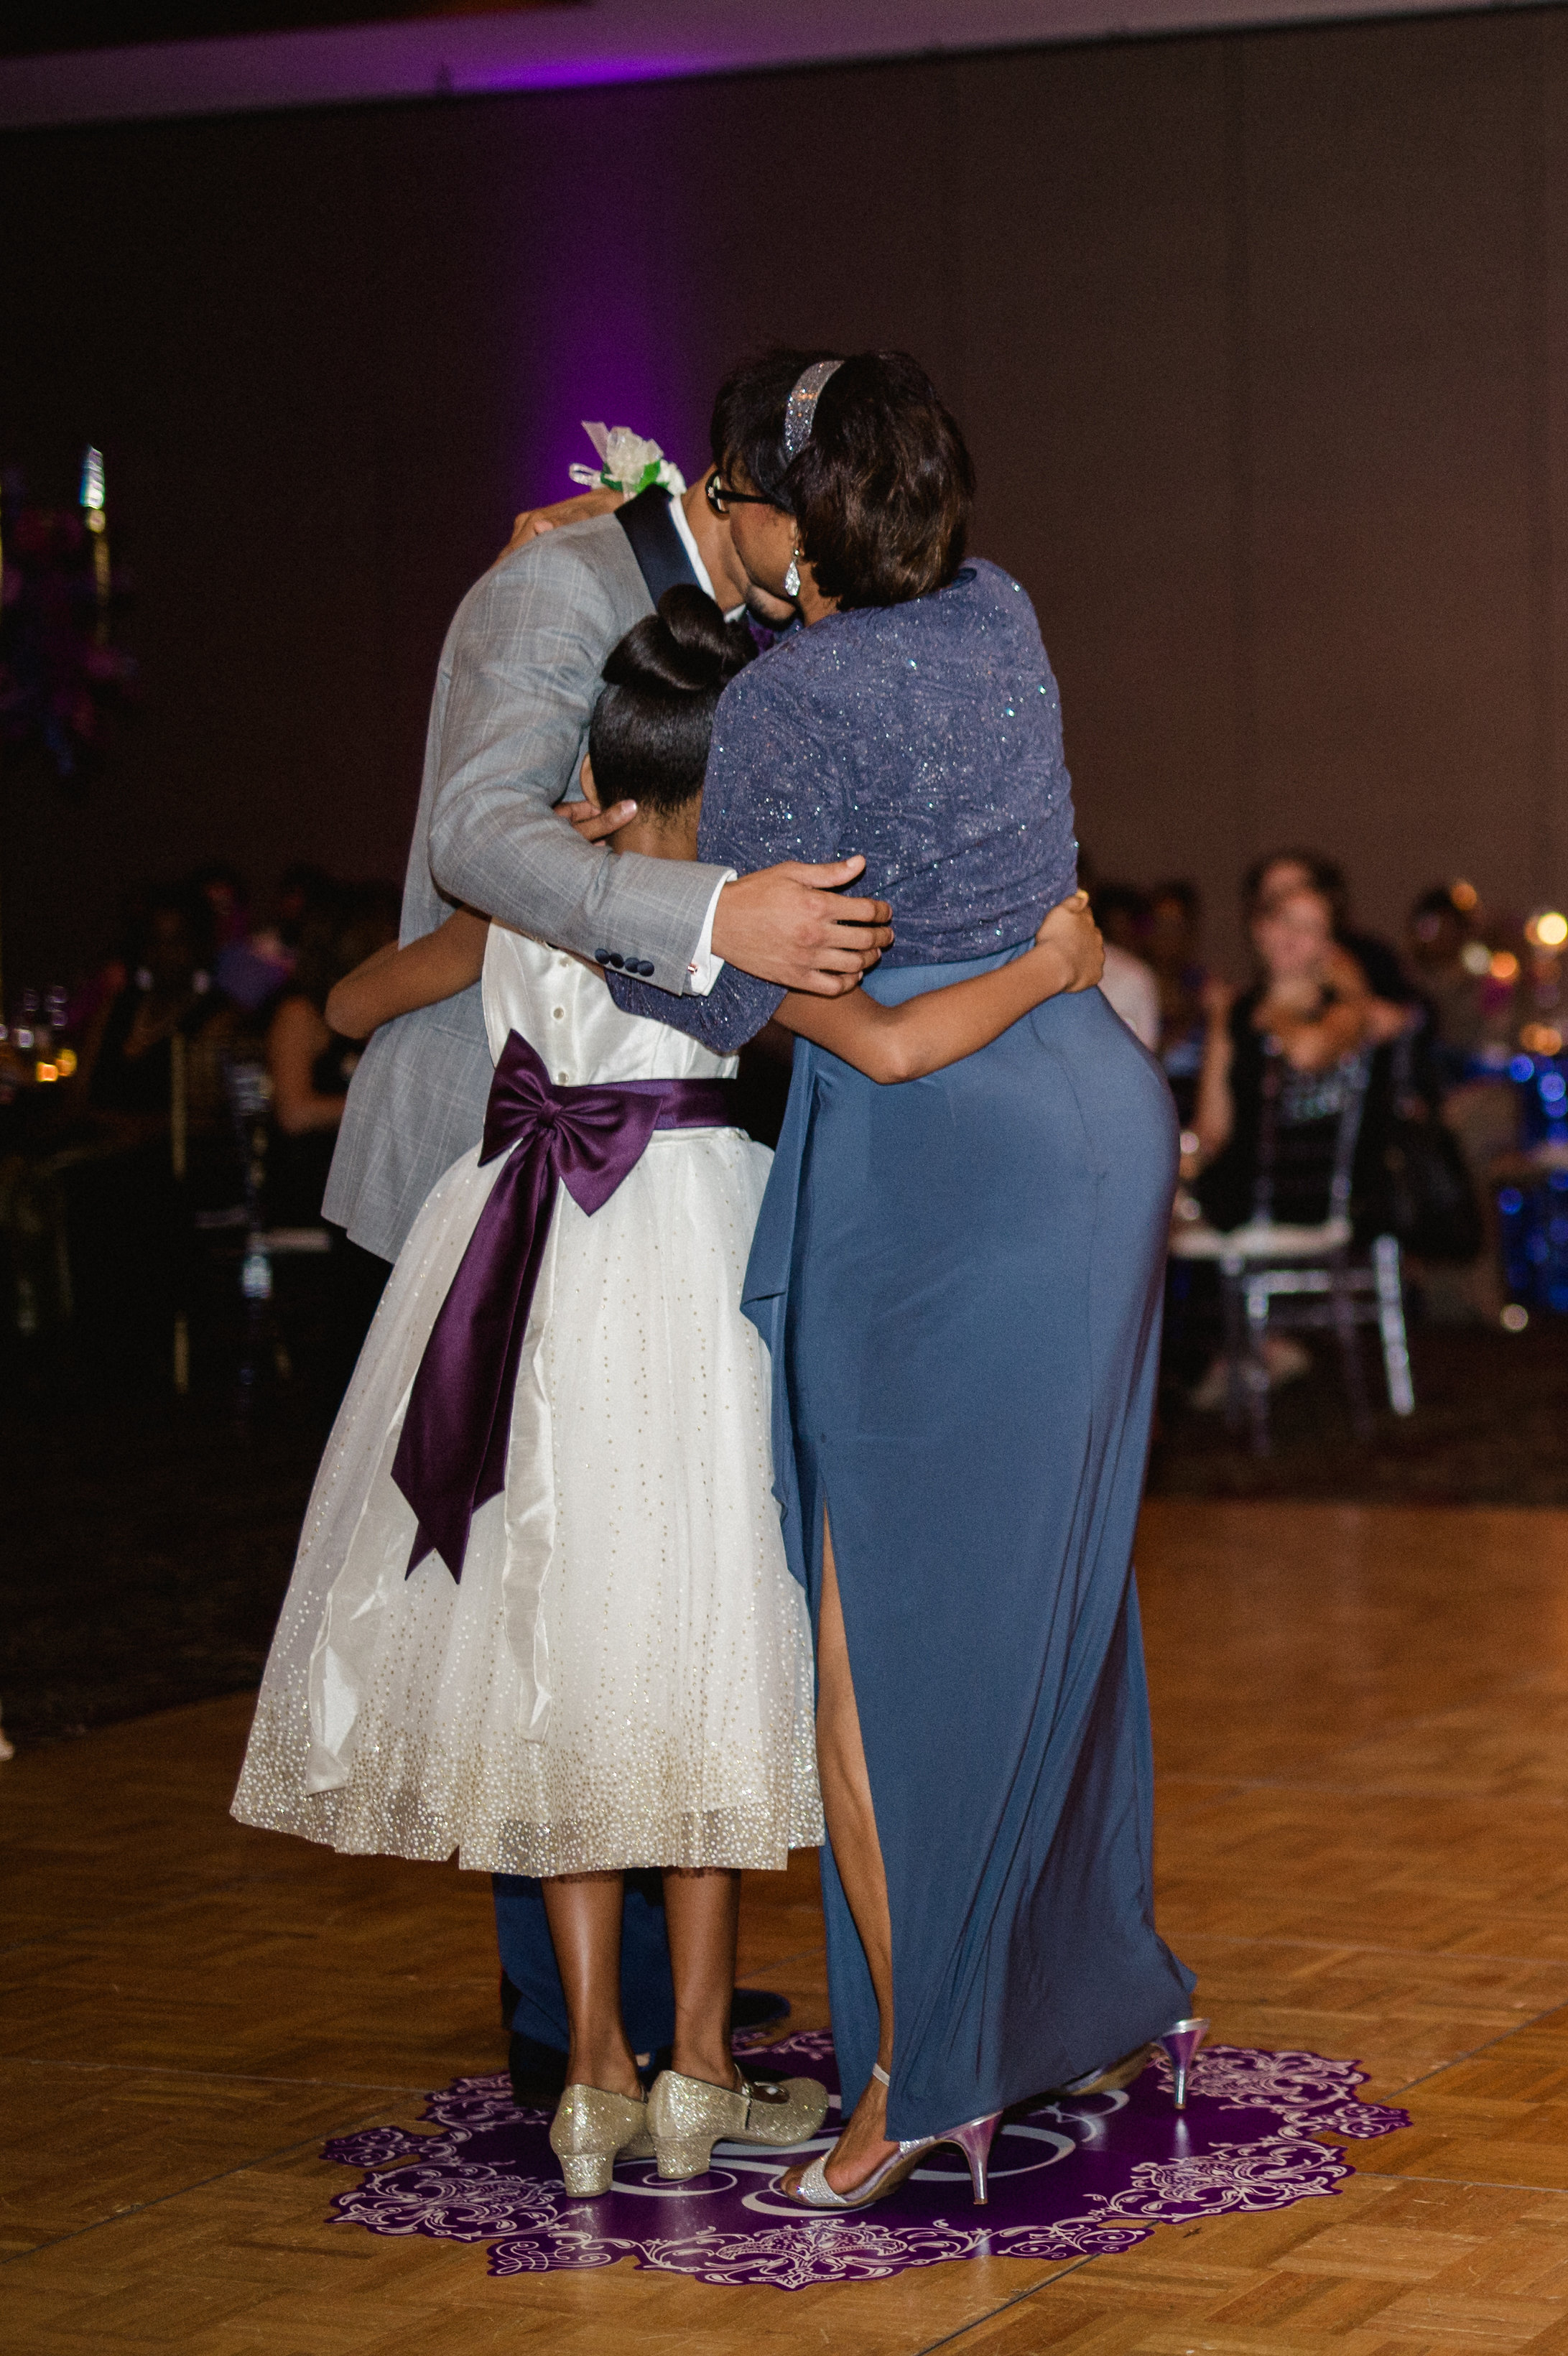 imani&chris|wedding|reception-215.jpg